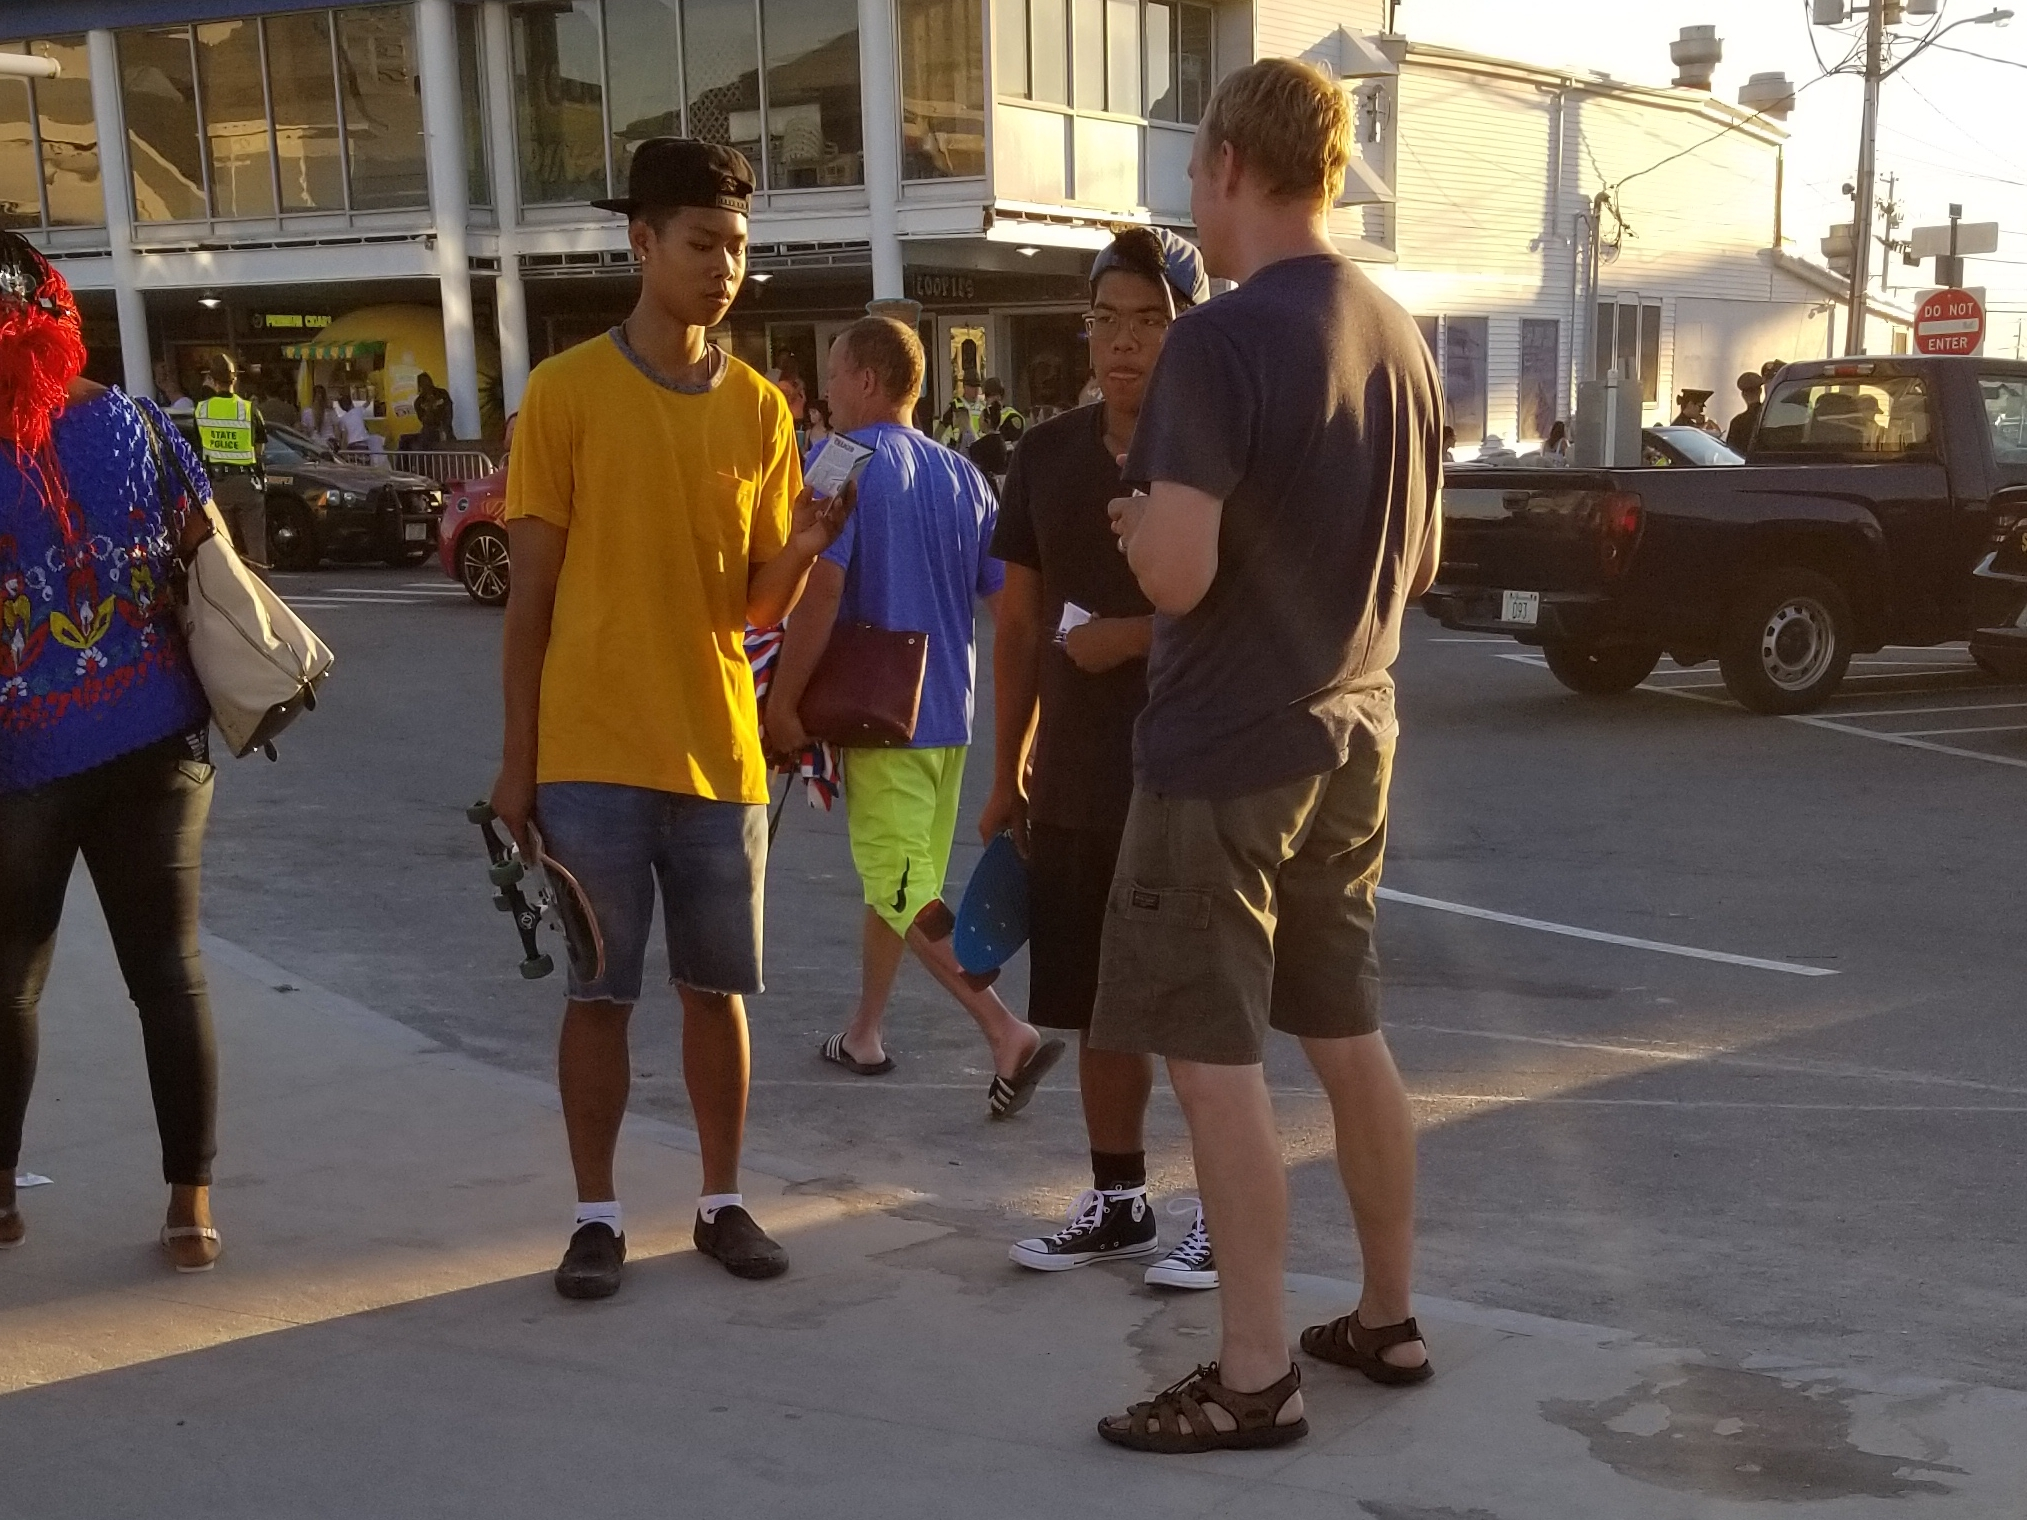 This is Kenny and Justin.  Kenny's dad is a Christian, but he's  looking into Buddhism. As Chris shared Jesus, Justin said, 'This is strange. I was playing basketball with a guy who was telling me about Jesus, and now you're telling me about Jesus too. I need to think about this.' He took an evangelistic DVD from Chris.